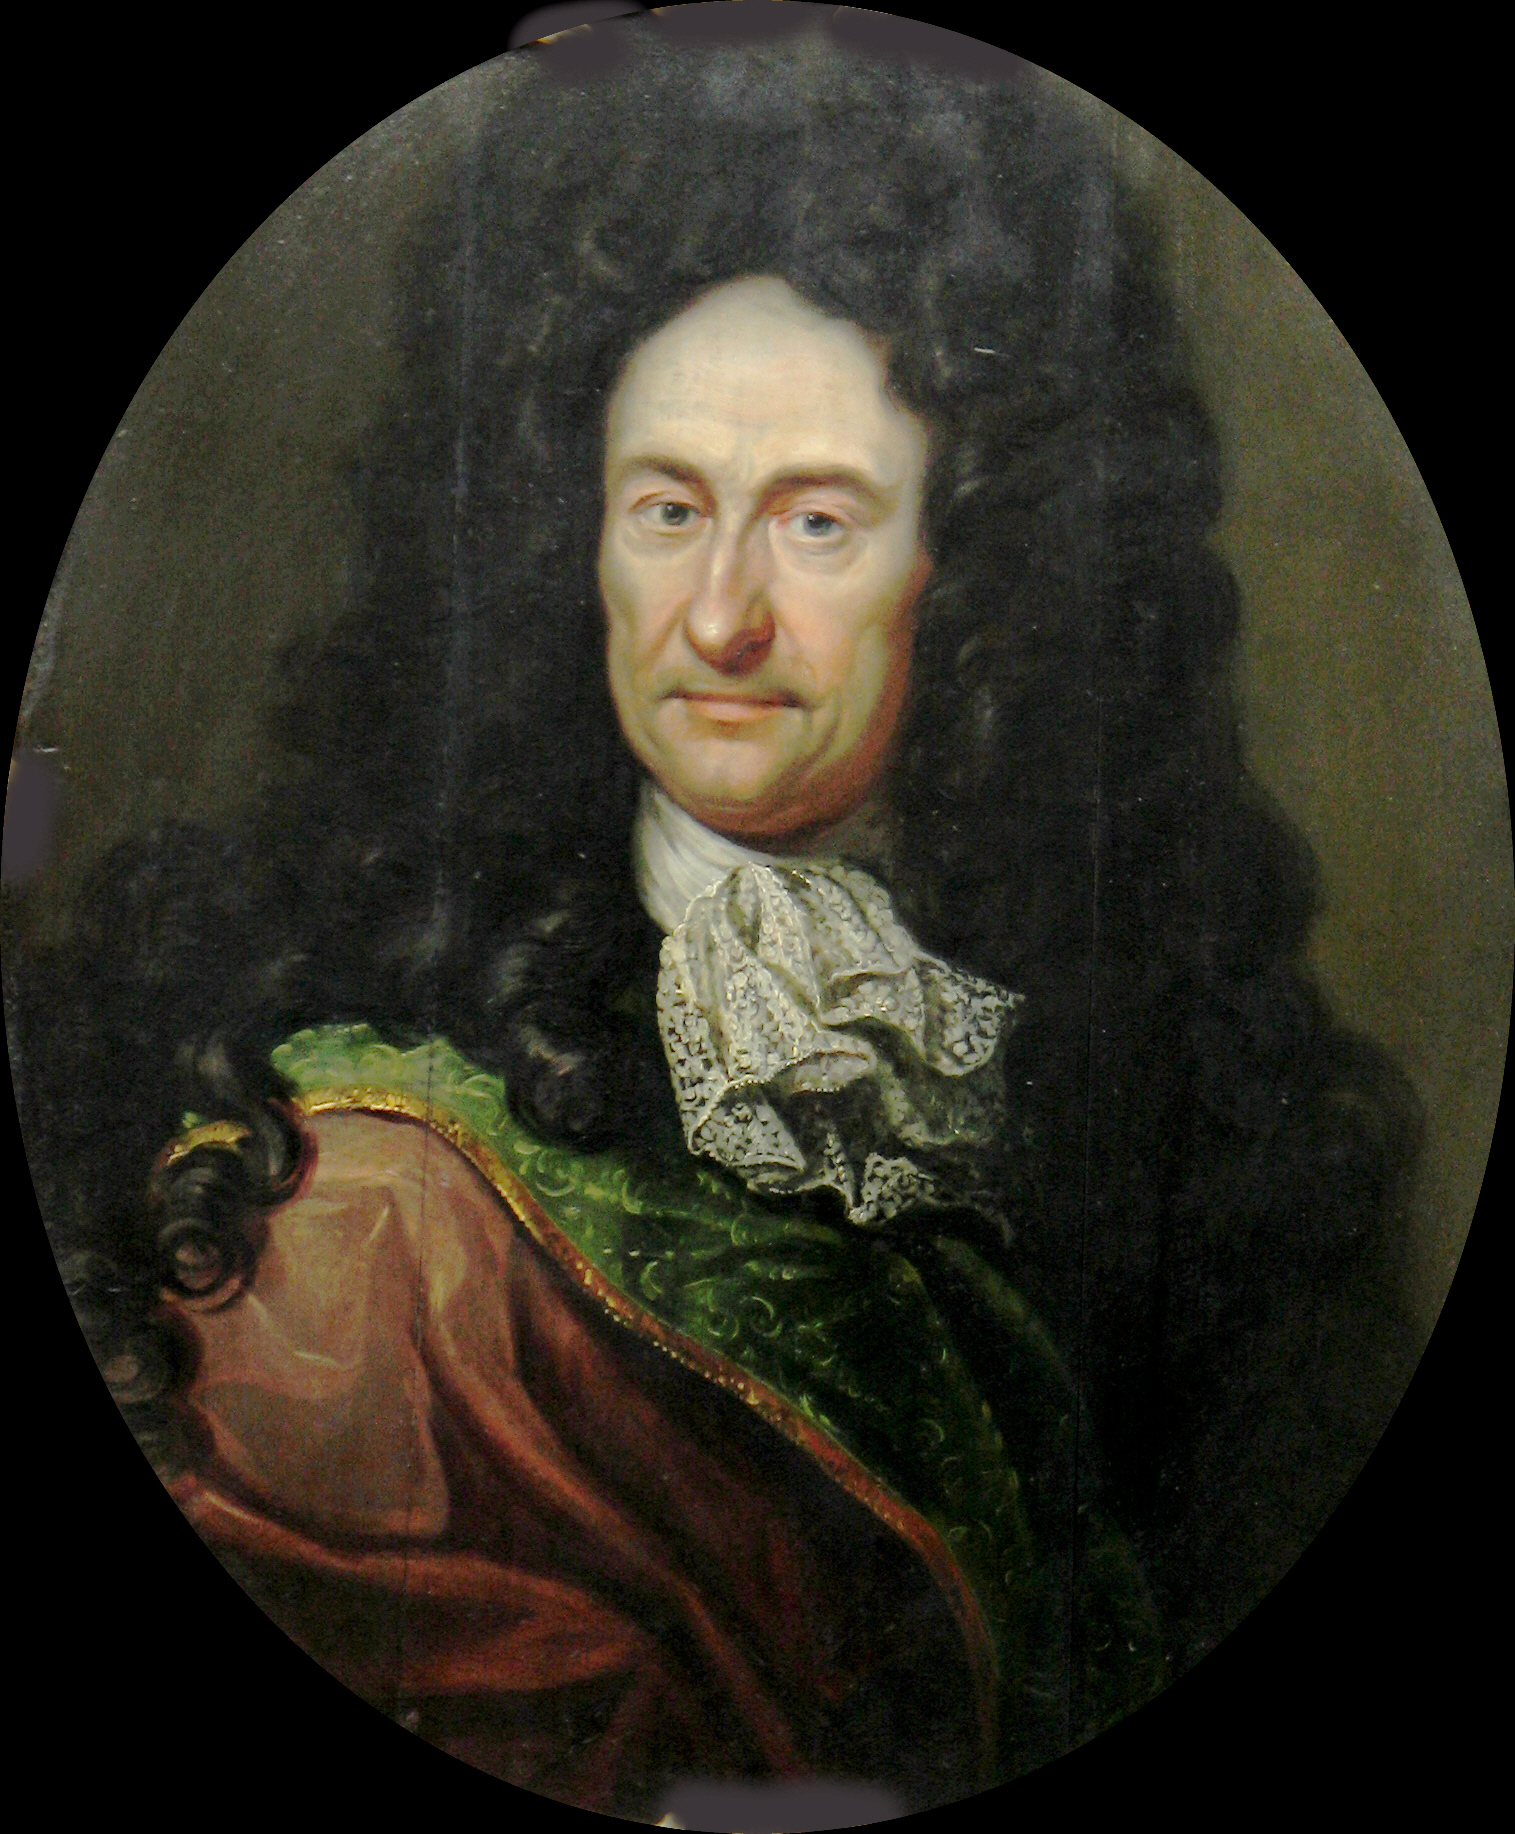 Let Us Calculate - the Last Universal Academic Gottfried Wilhelm Leibniz - SciHi Blog